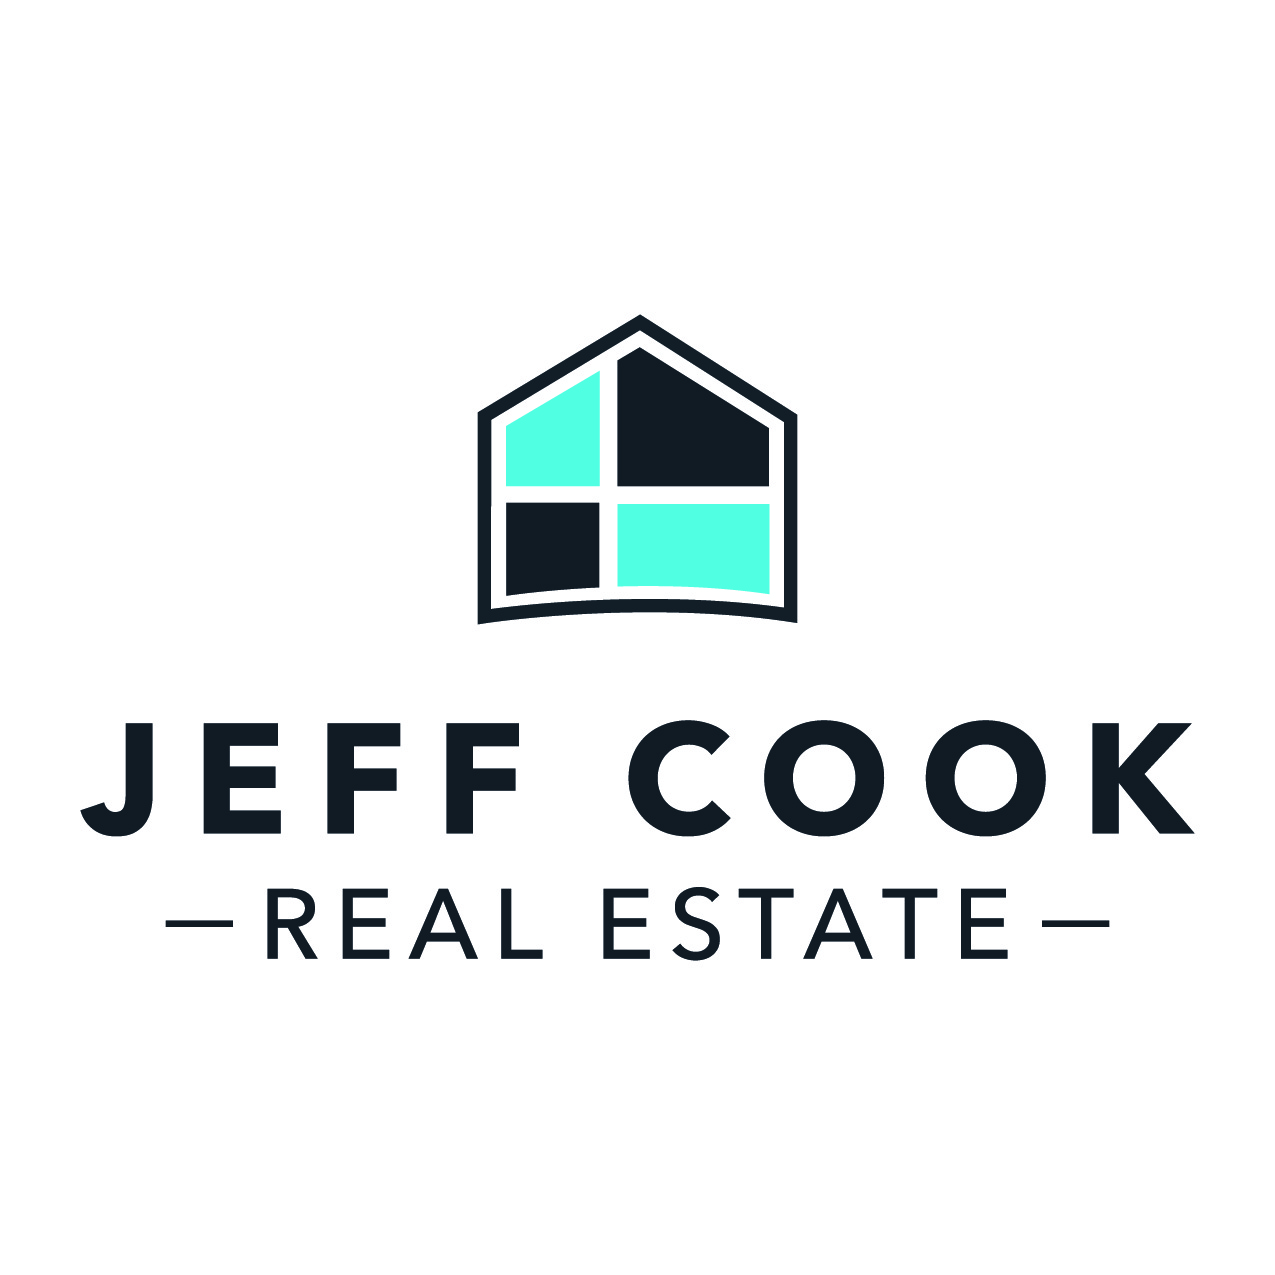 Jeff Cook Real Estate in Mount Pleasant